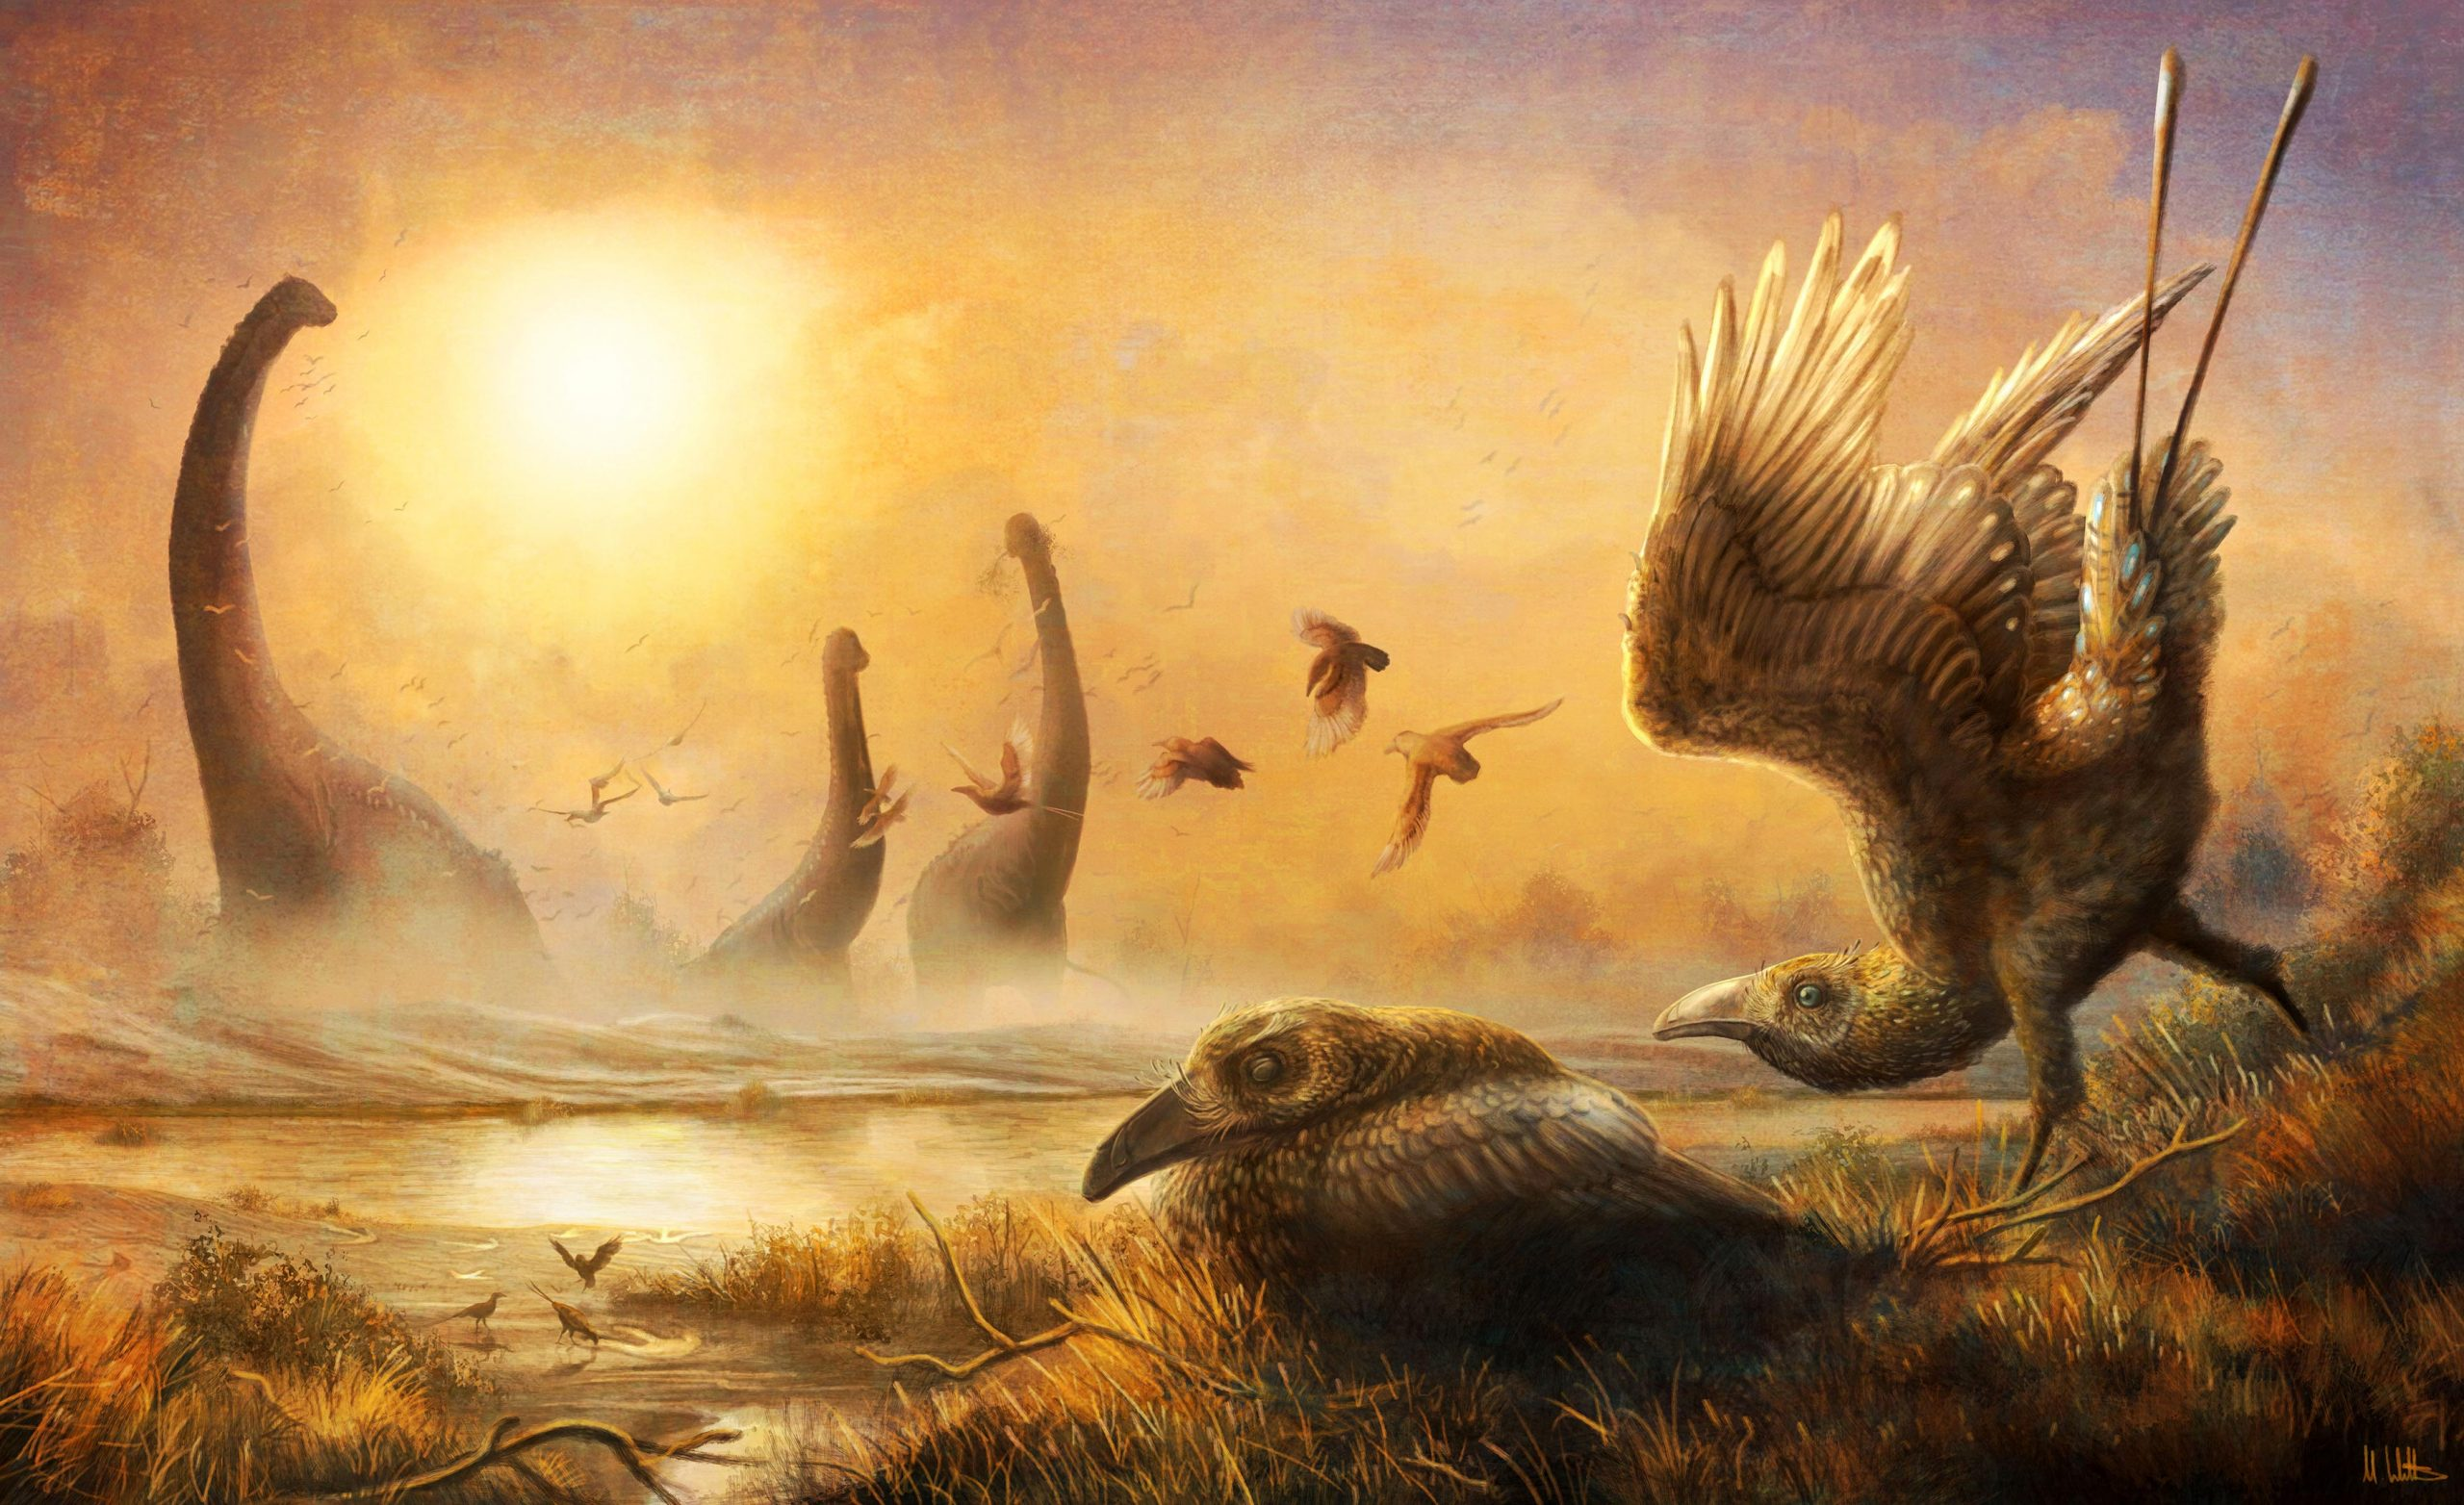 Hidden Diversity During the Age of Dinosaurs Revealed by Early Bird With Tall, Sickle-Shaped Beak - SciTechDaily